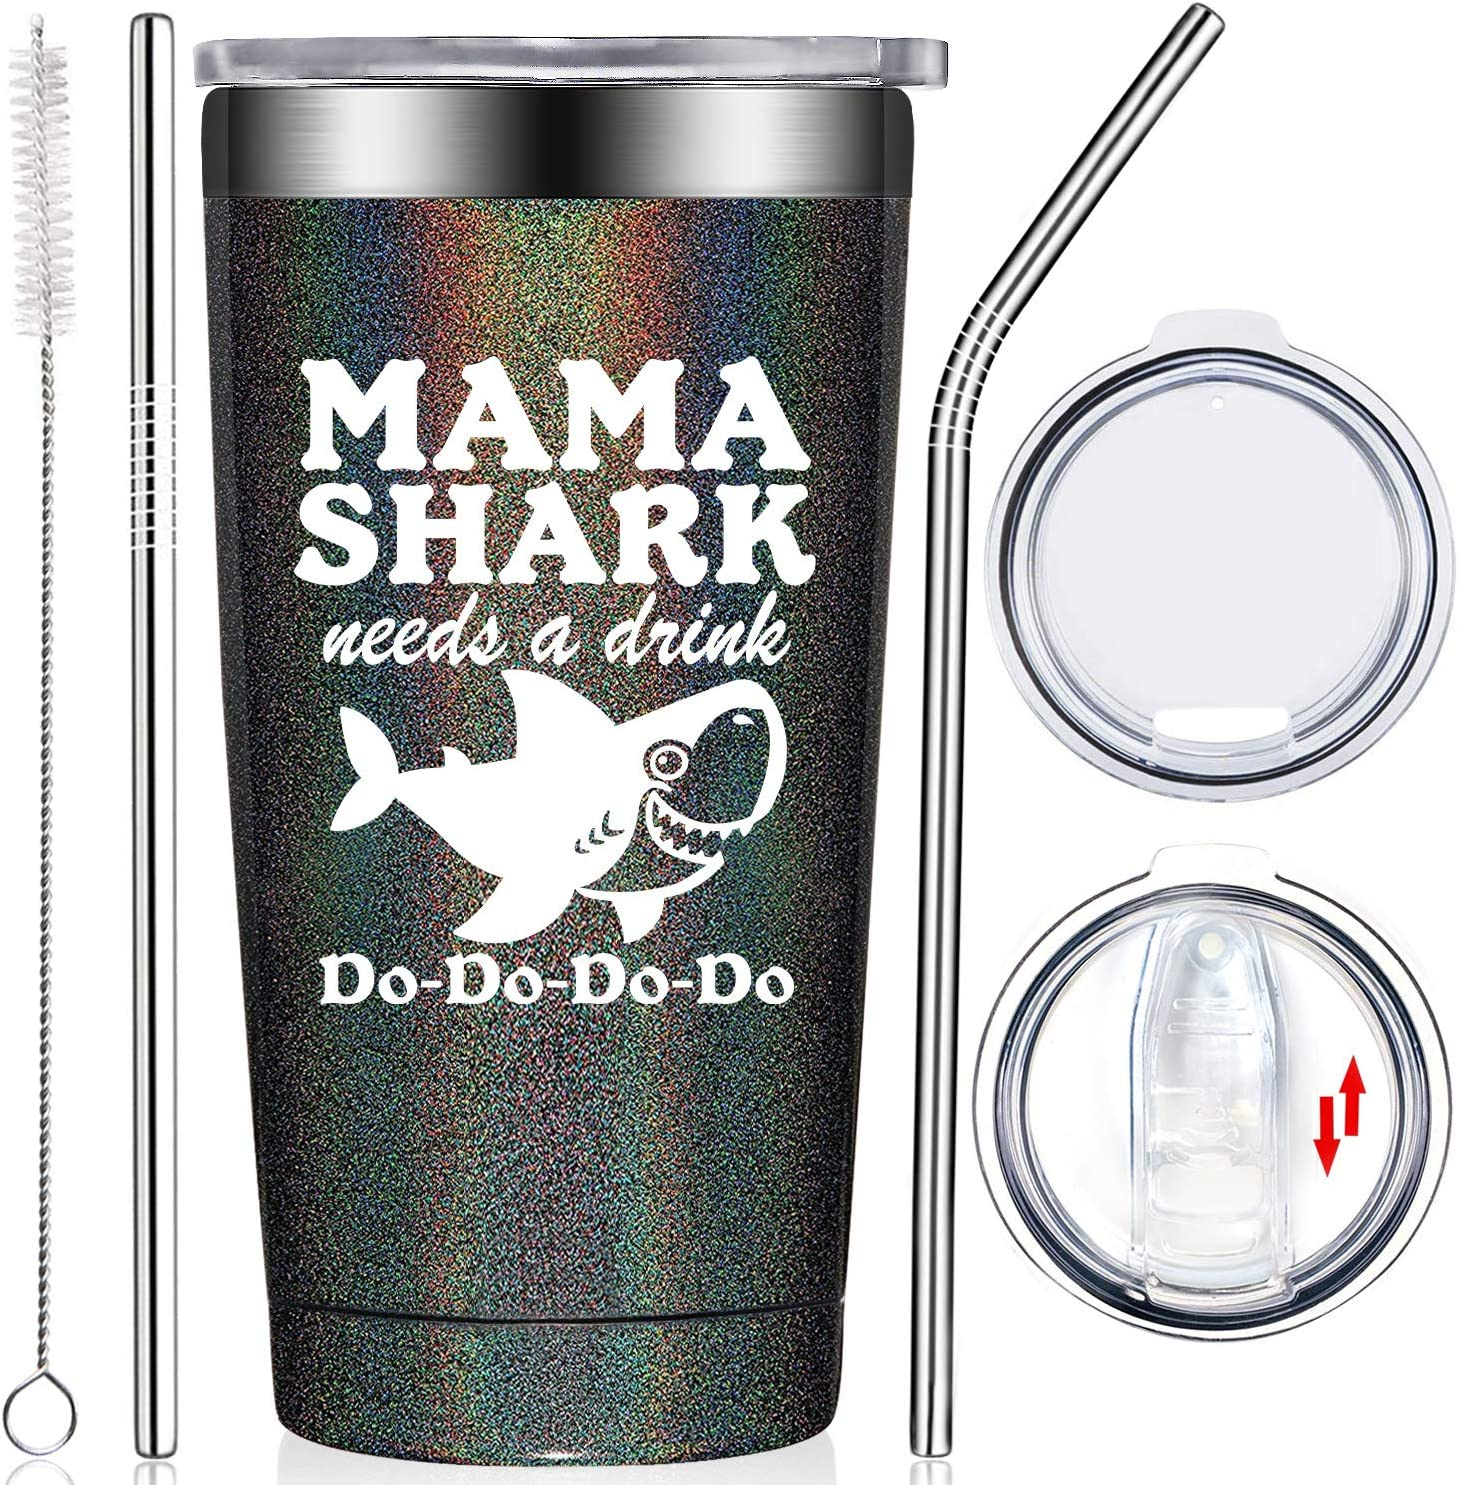 Fufendio Gifts for Mom - Mama Shark Needs a Drink - Funny Best Mom Birthday Gifts from Daughter, Son, Kids - Mother's Day Present Idea for New Mon, Mommy, Wife, Women - Tumbler Cup with Lid and Straw